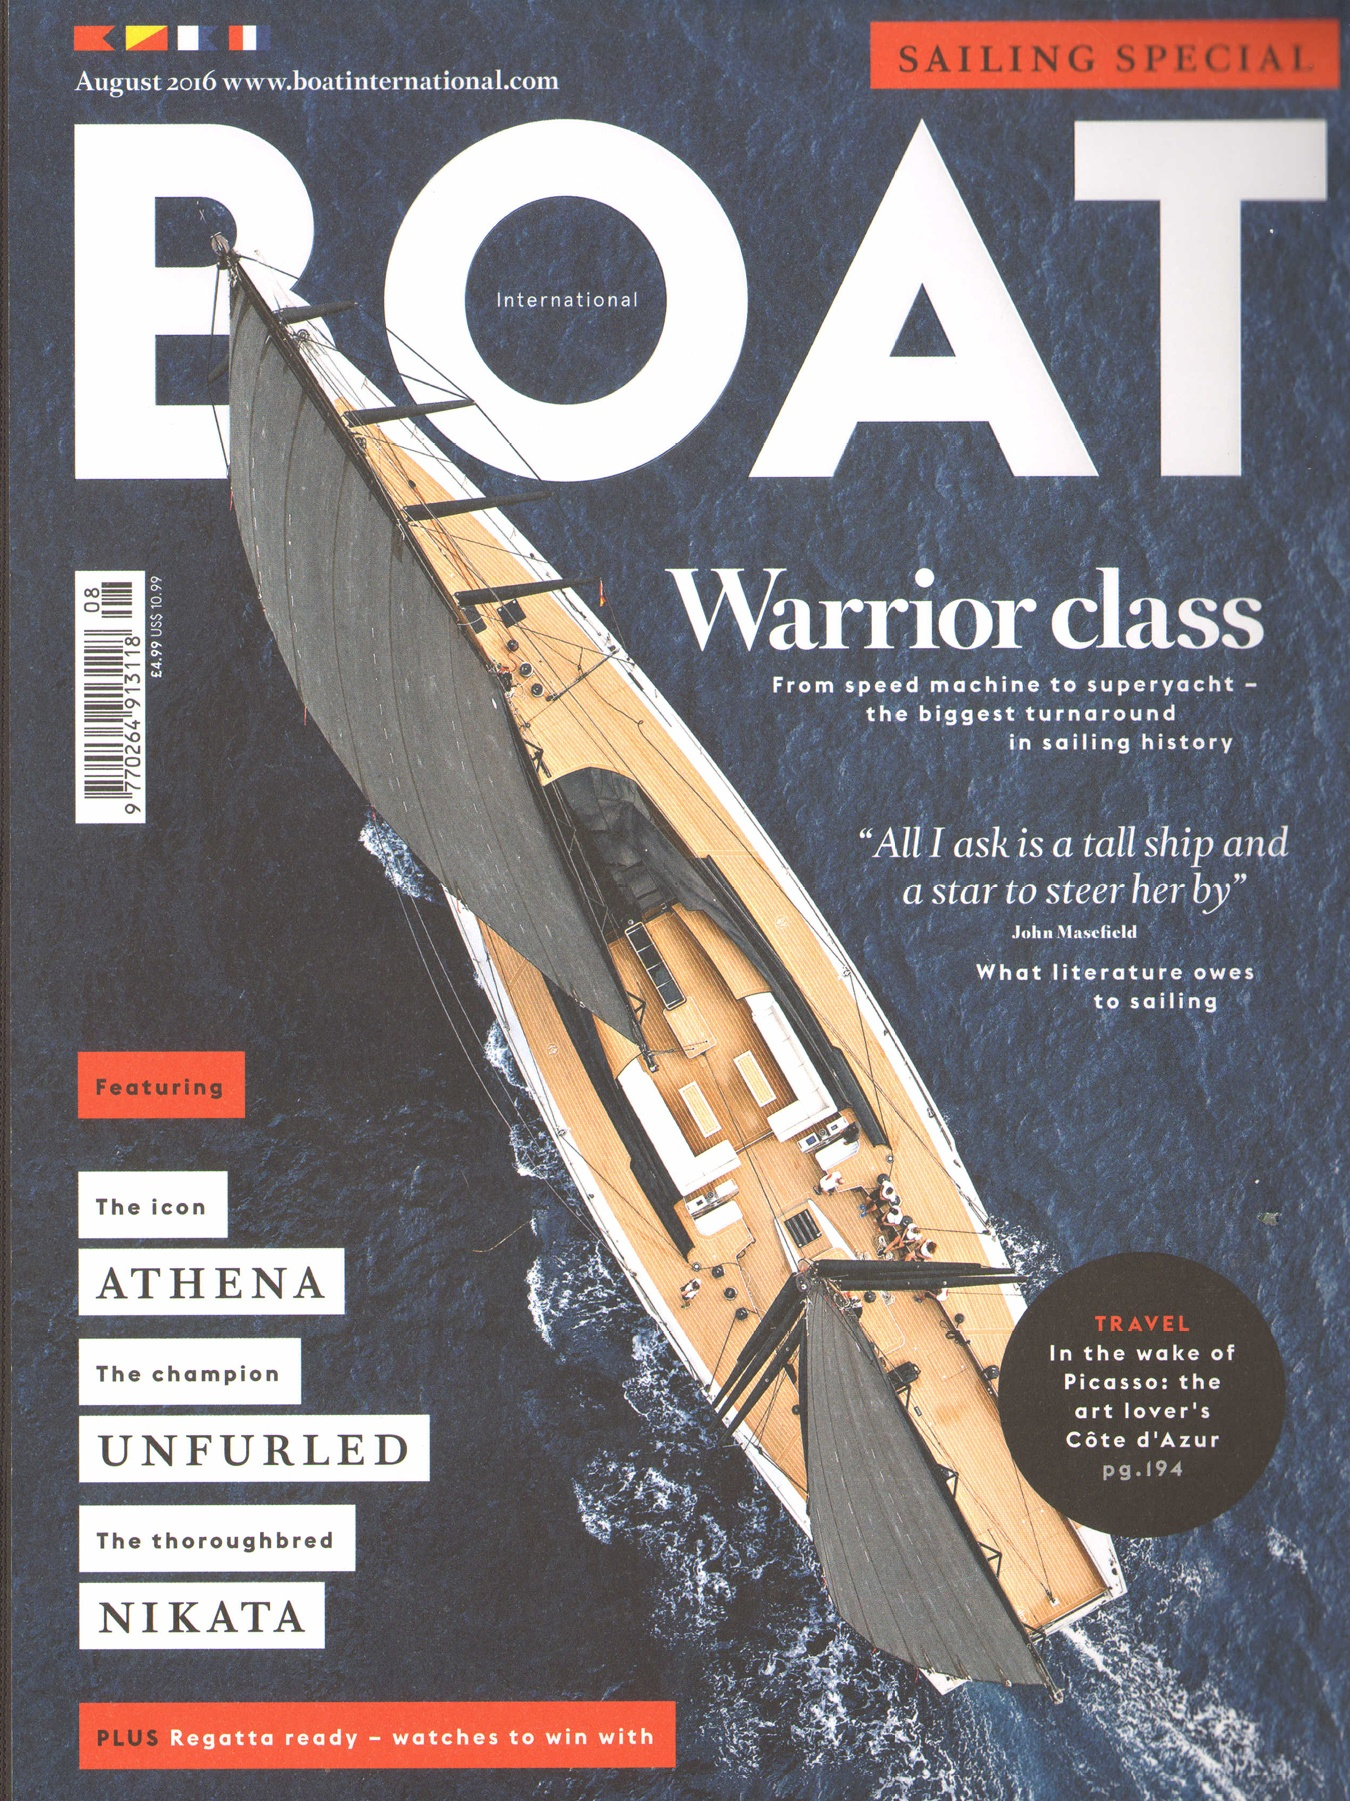 Boat International Aug 2016 Front Cover_2.jpg